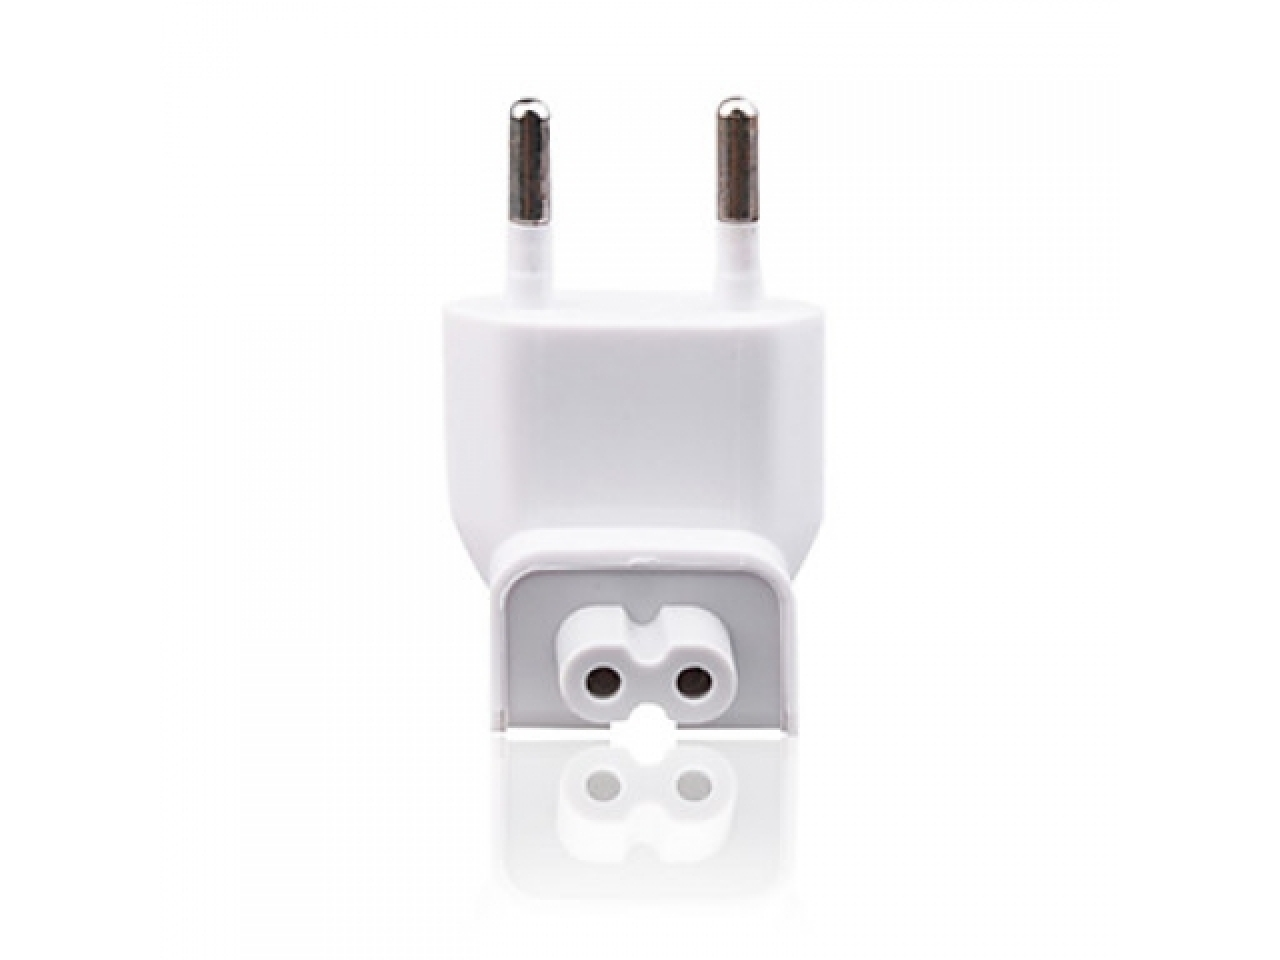 iPhone Travel Plug Duckhead Adapter für Europa / Schweiz